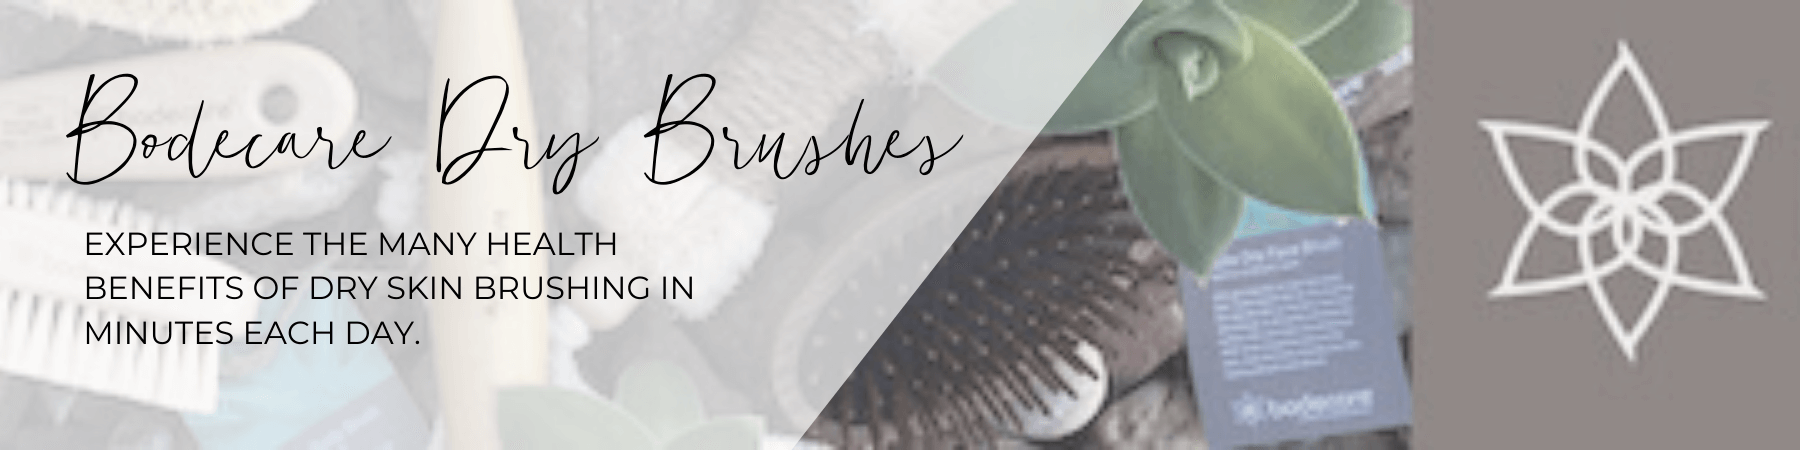 Experience the health benefits of Dry Brushing your body.